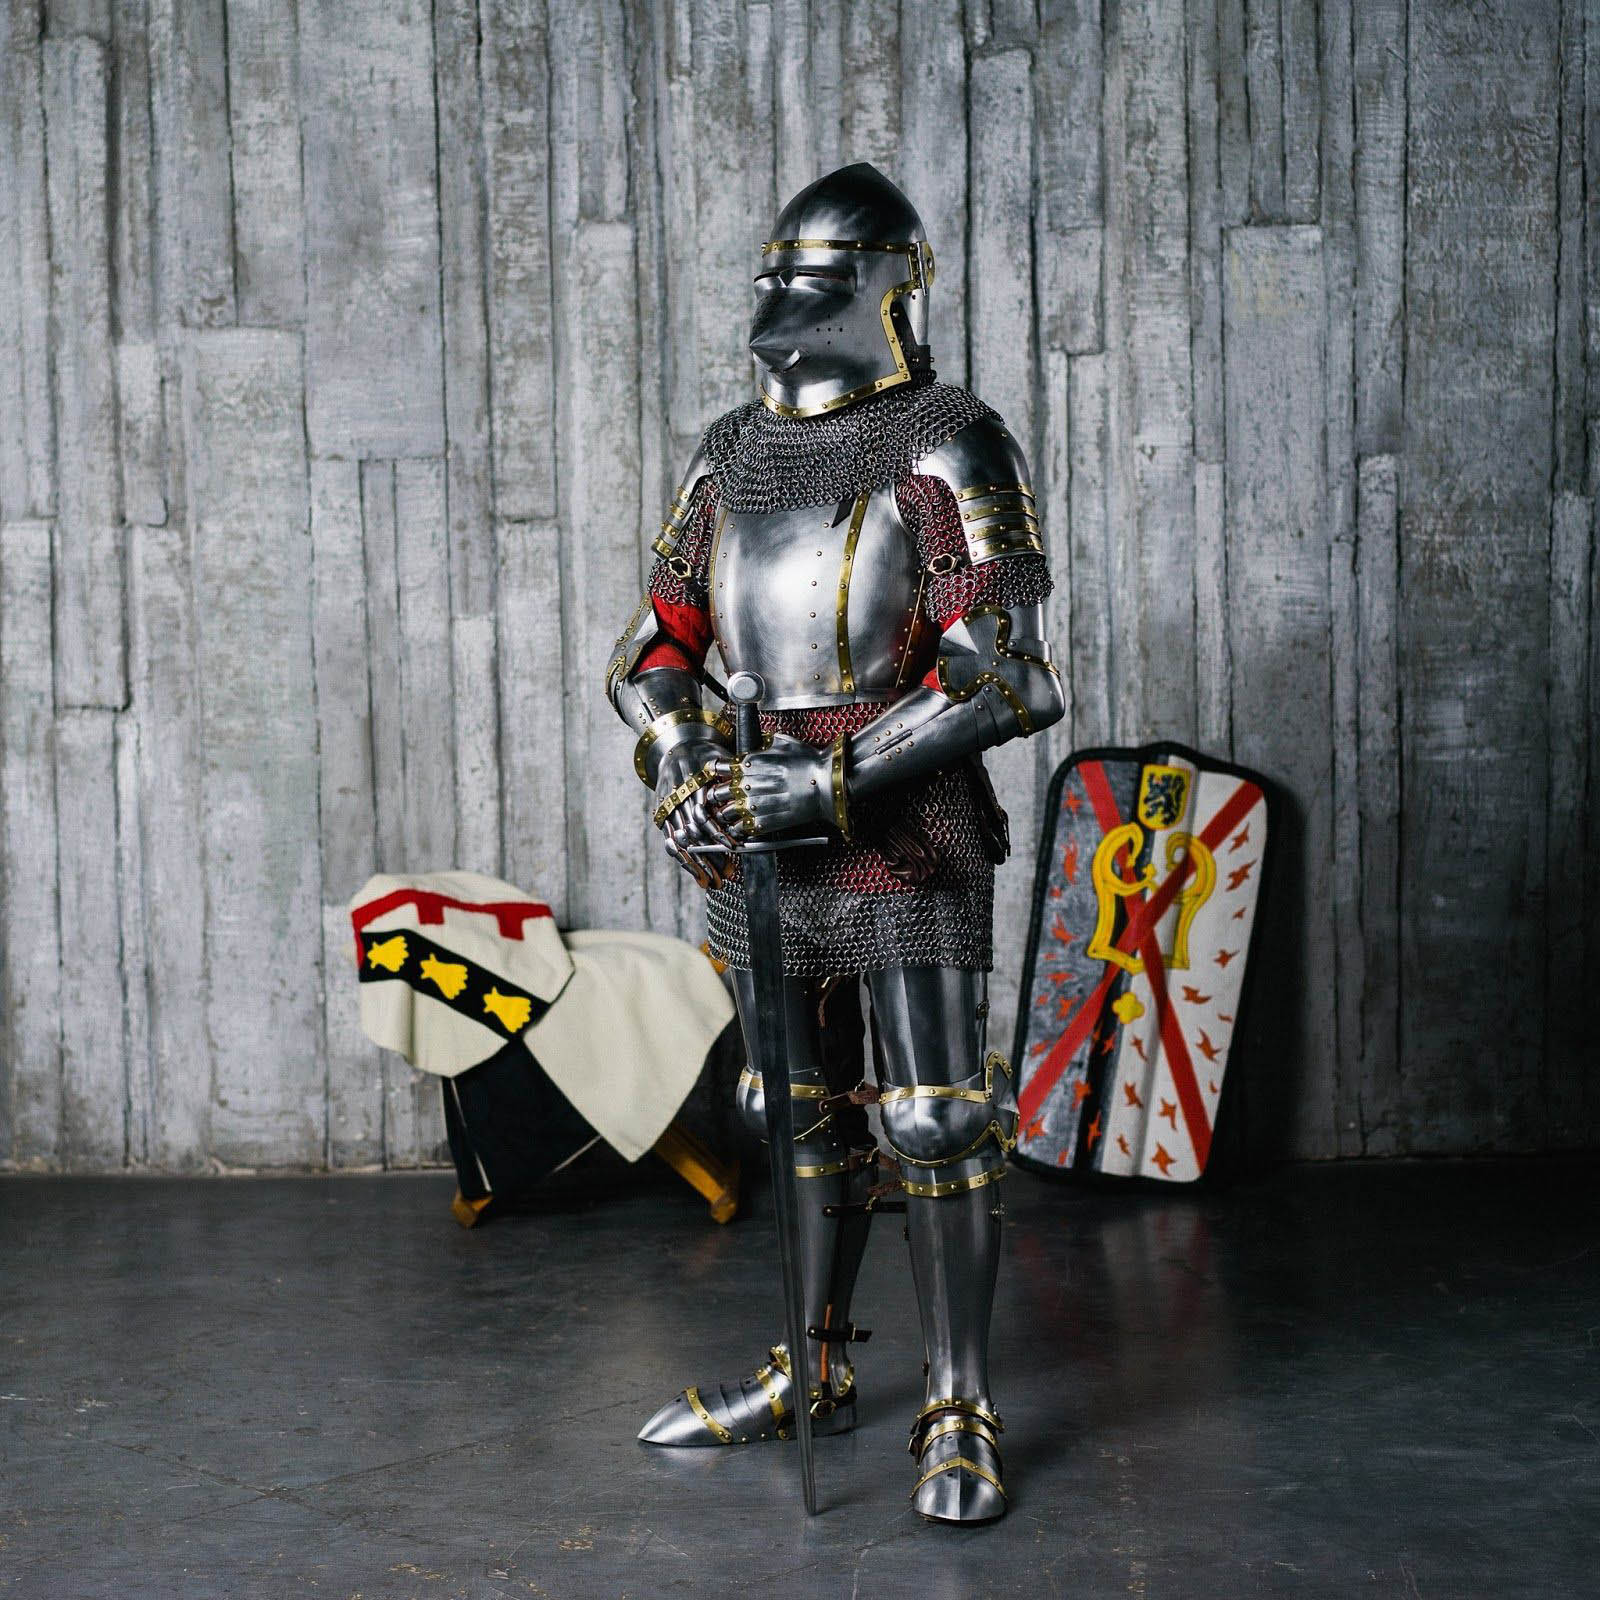 Churburg-style armour of the XIV century